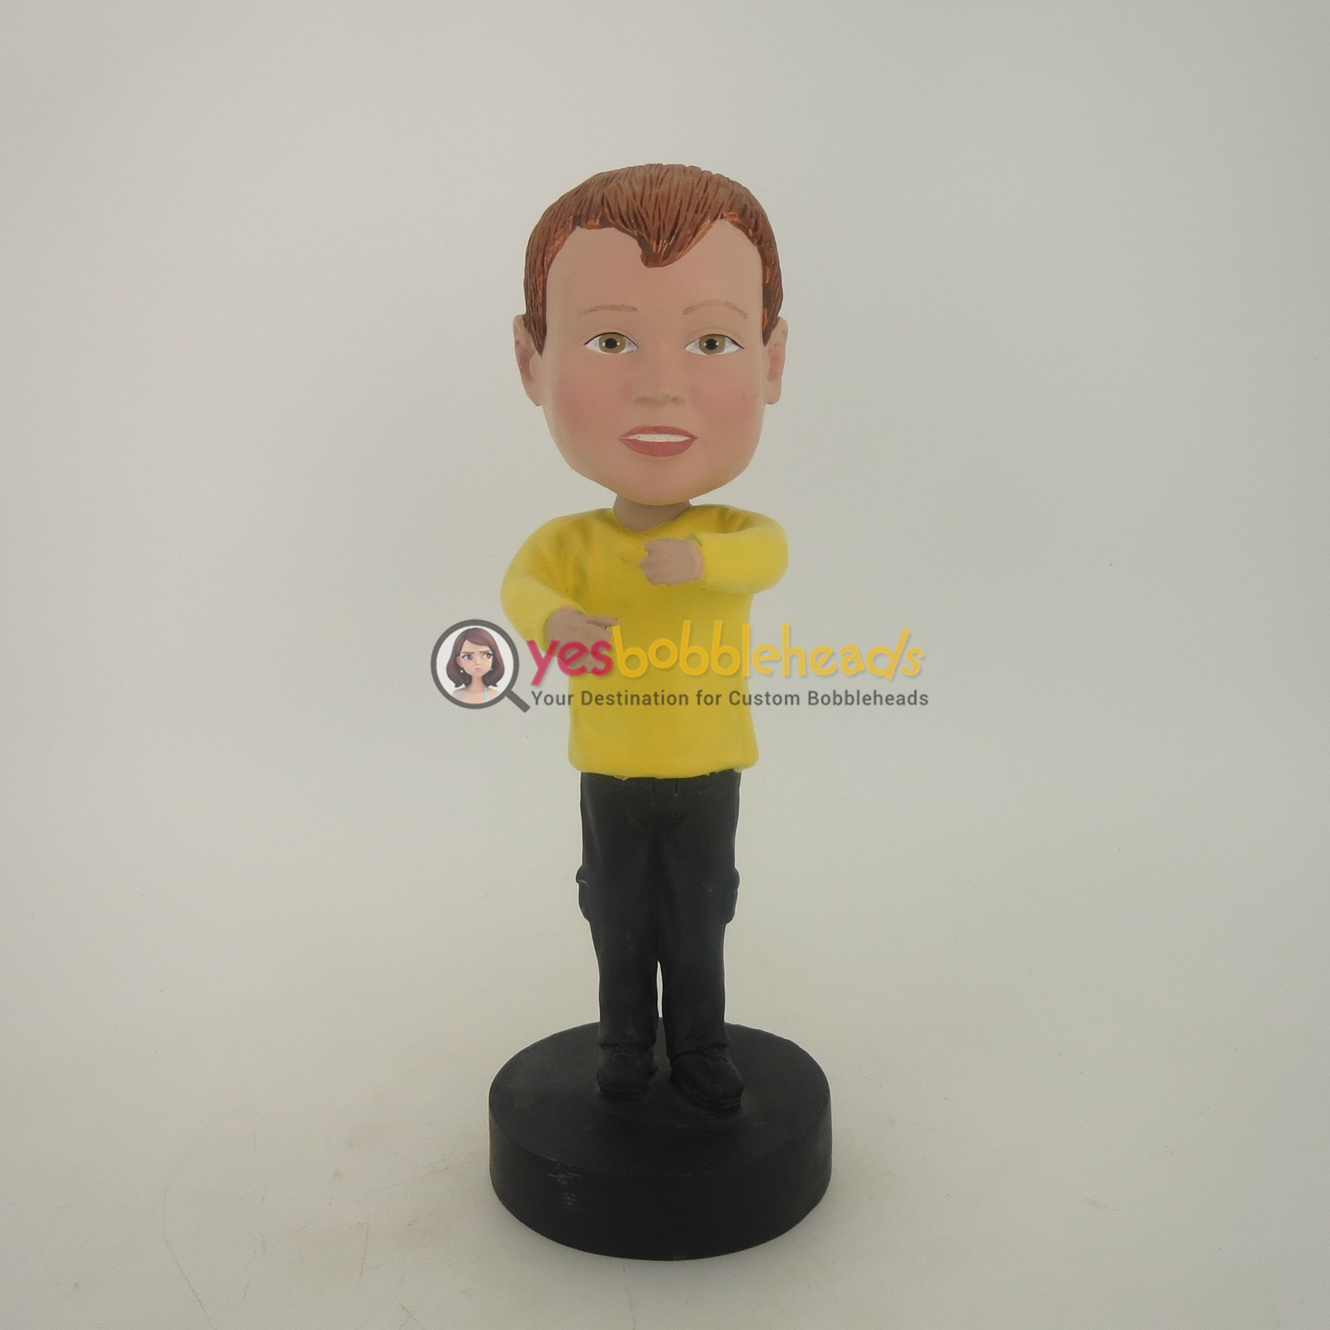 Picture of Custom Bobblehead Doll: Boy In Yellow With Holding Gesture